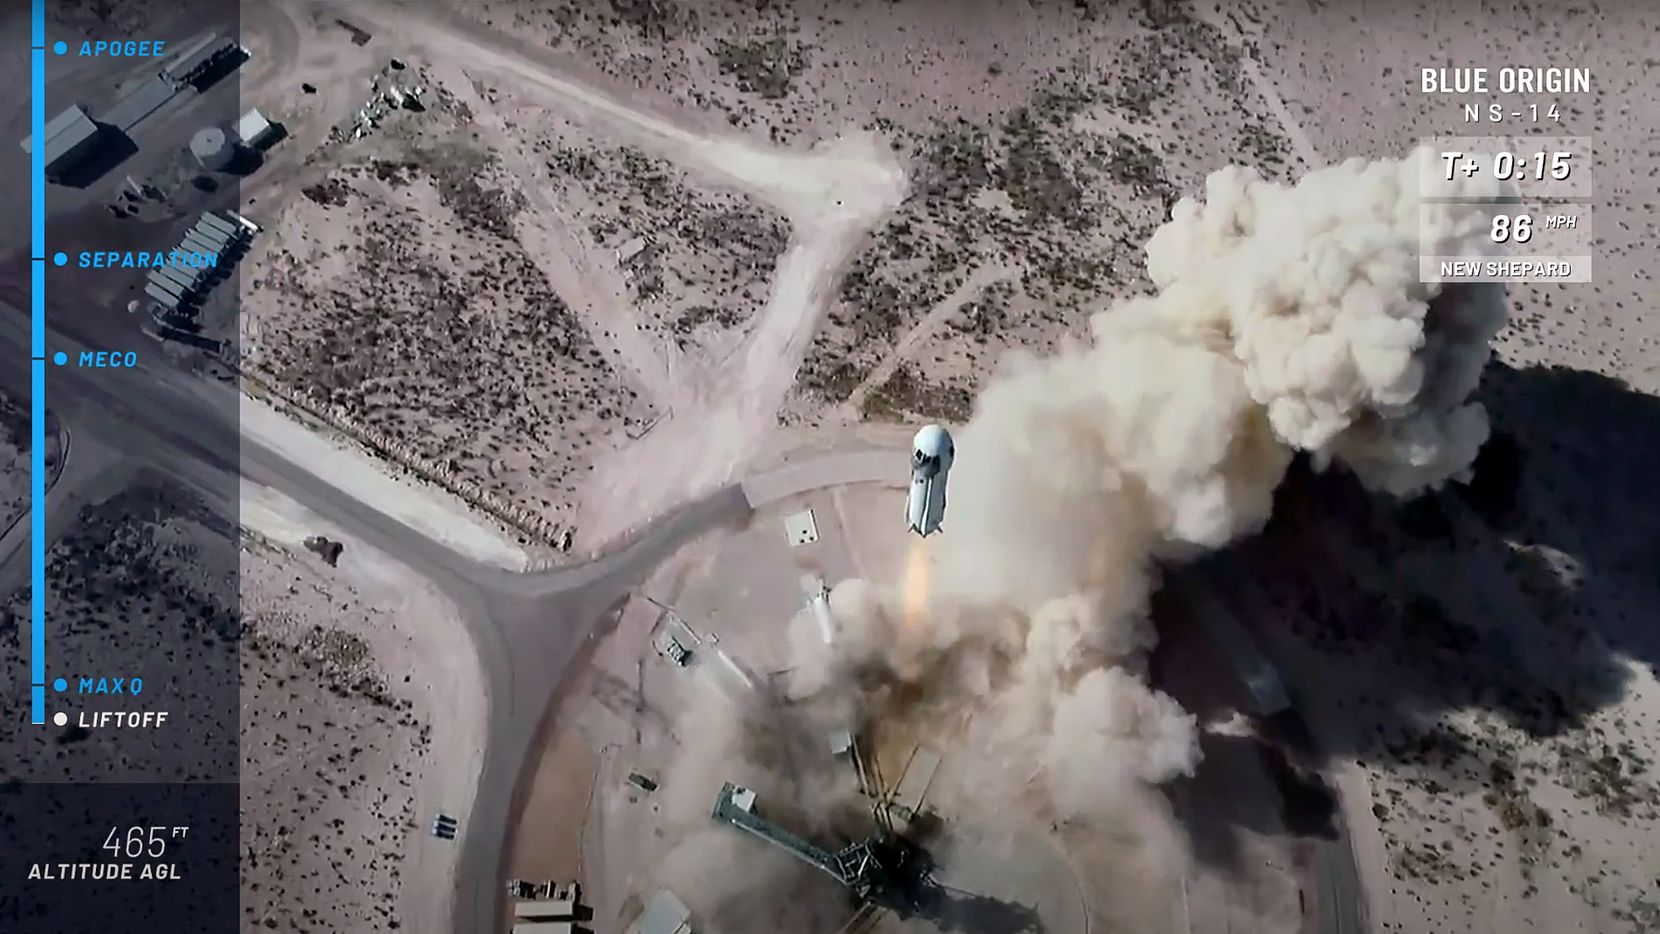 Blue Origin launches capsule to space from Van Horn with astronaut perks 3